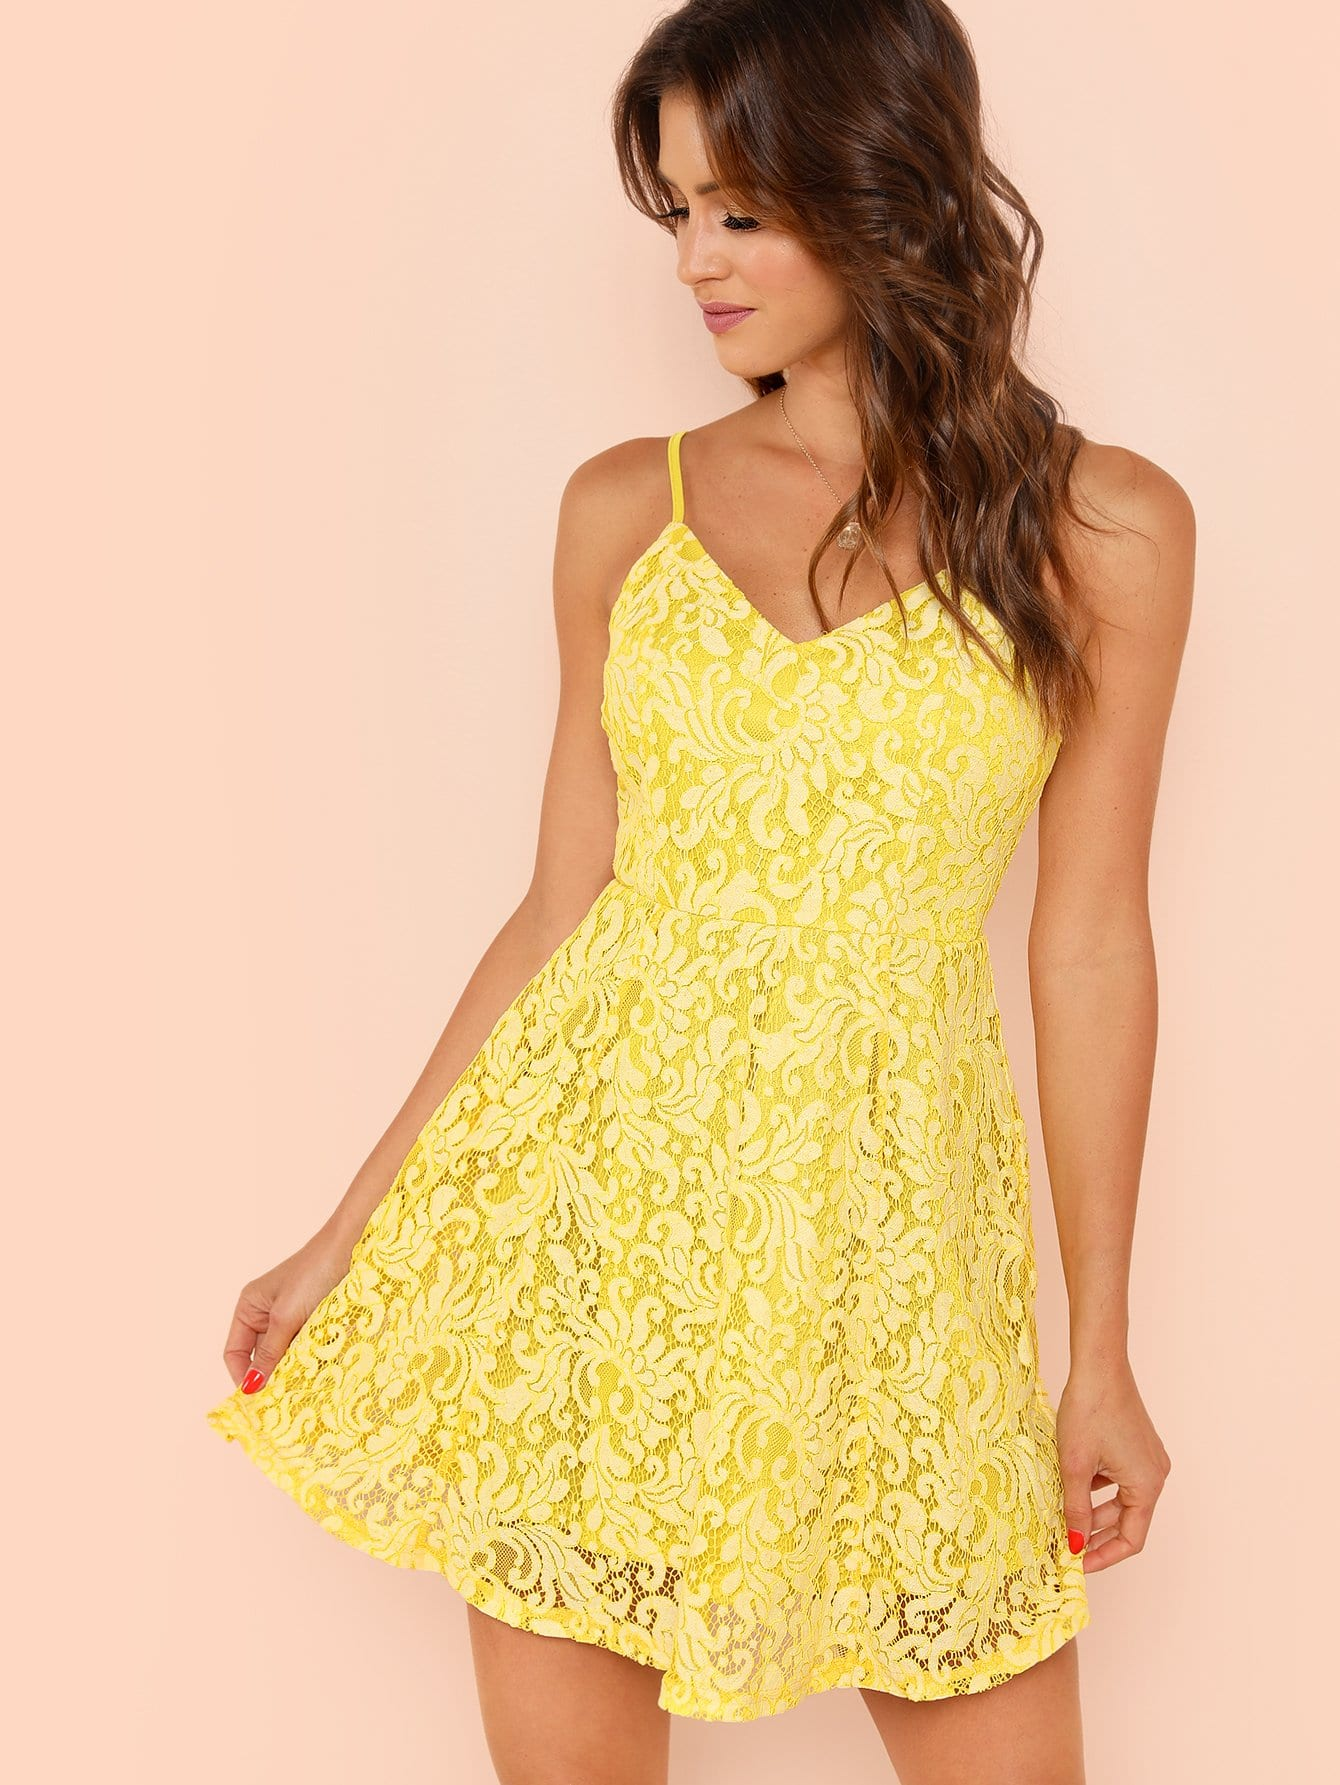 Lace Overlay Fit & Flare Cami Dress lace overlay fit and flare dress